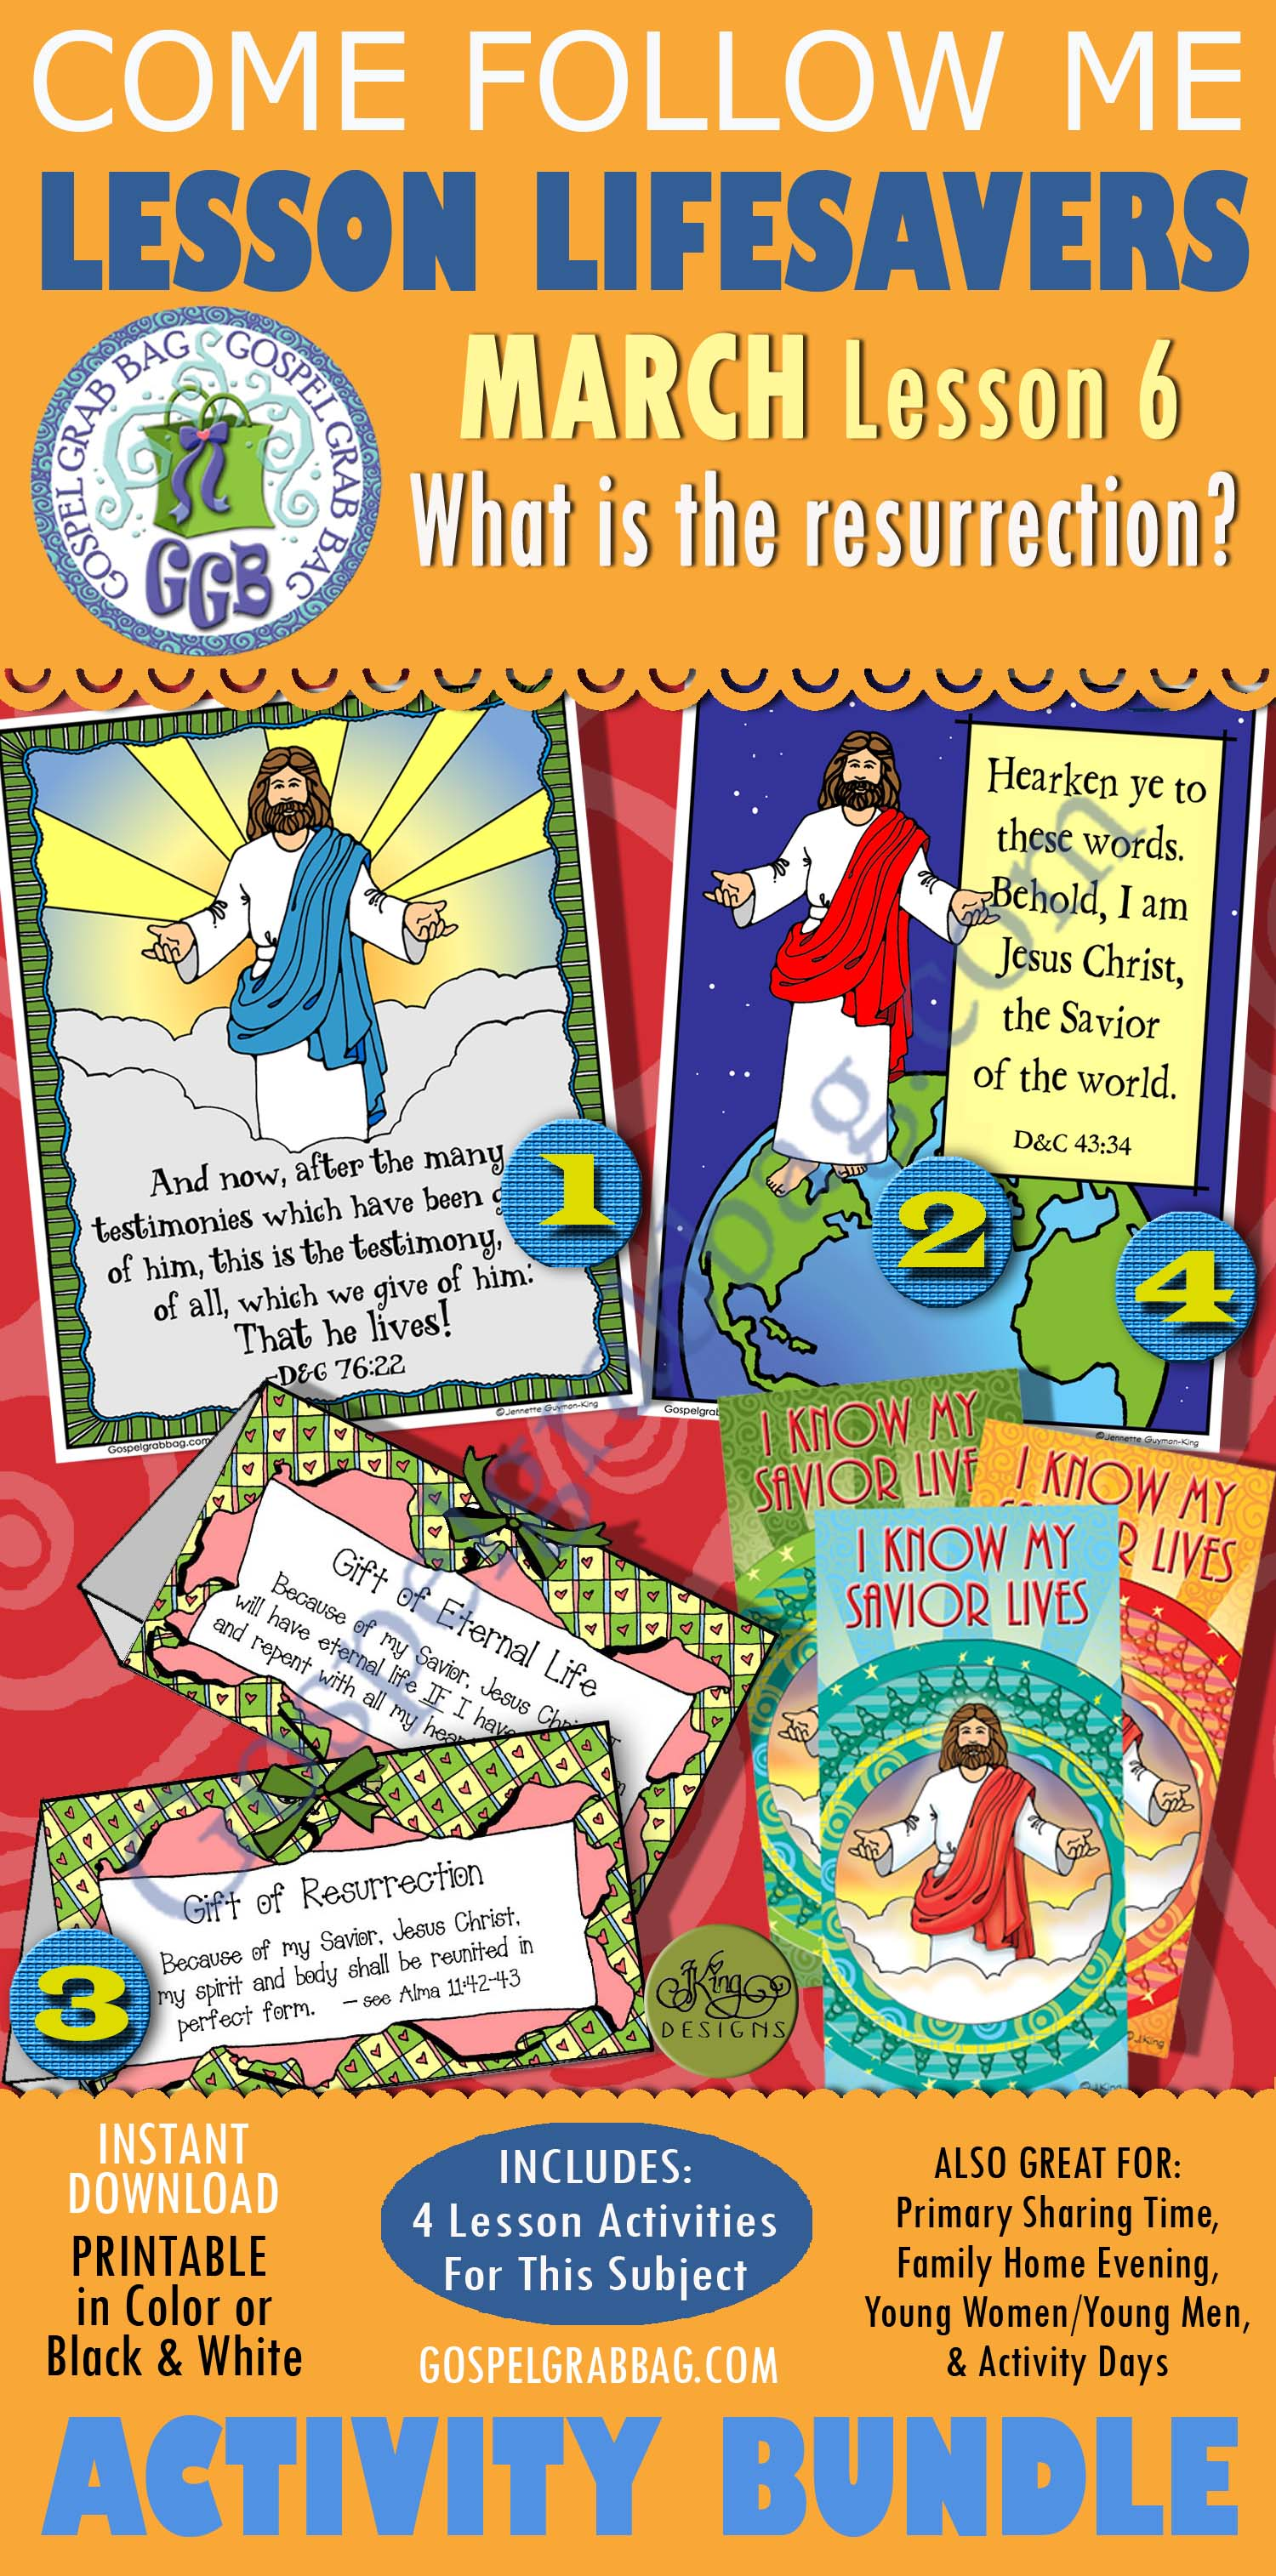 """$4.00 MARCH Lesson 6 - Come Follow Me """"What is the resurrection?"""""""